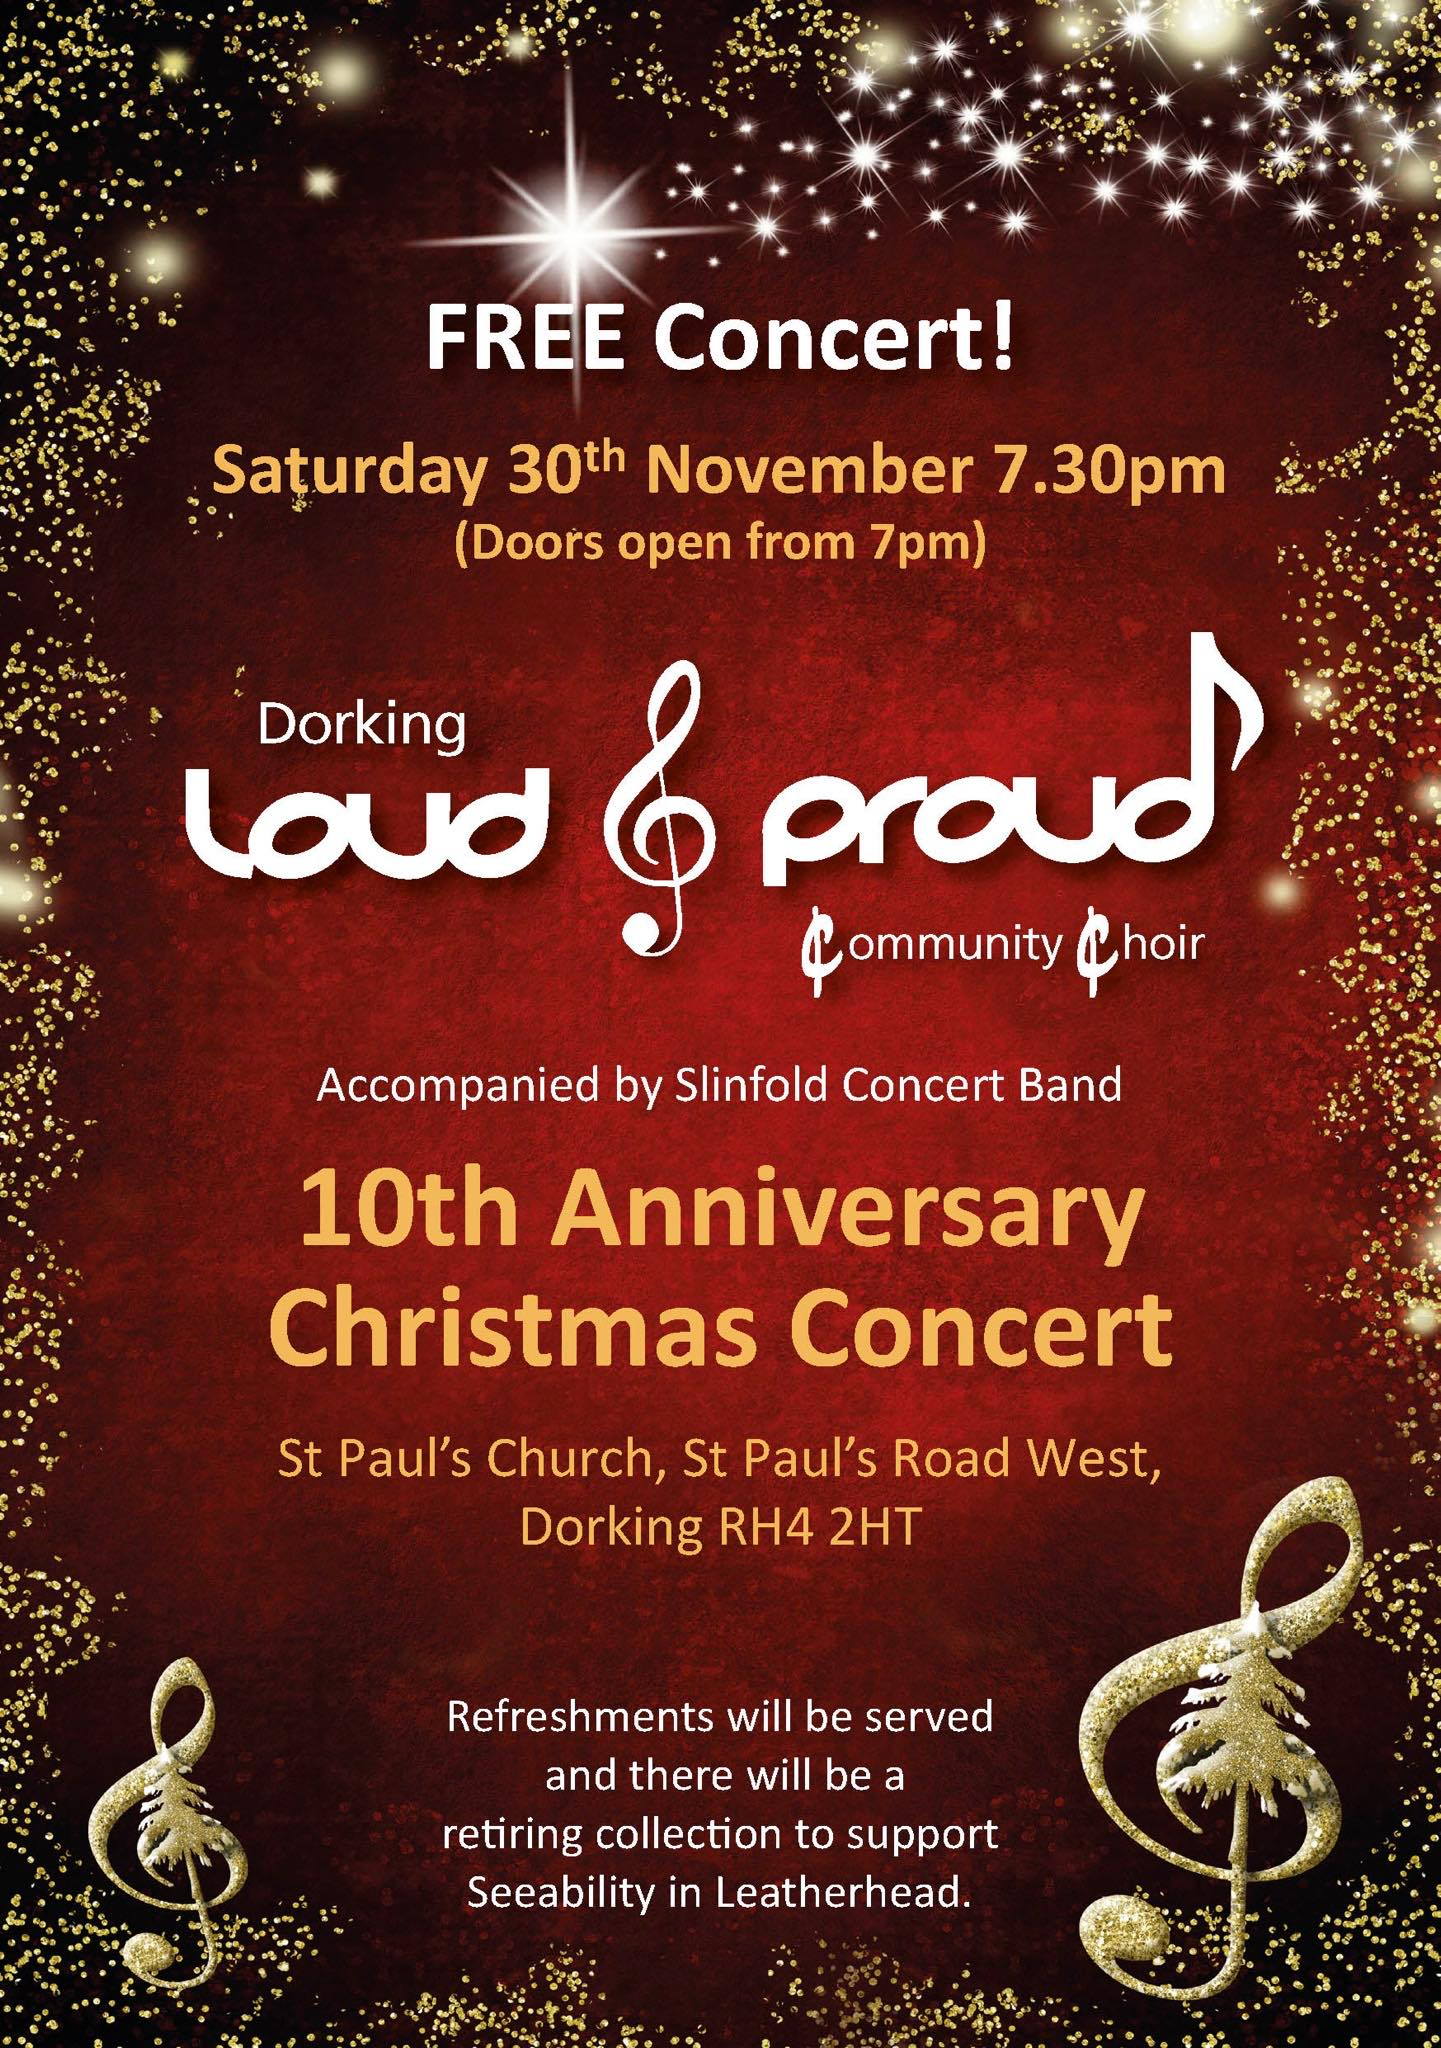 Poster for Dorking Loud & Proud 10th Anniversary Christmas Concert